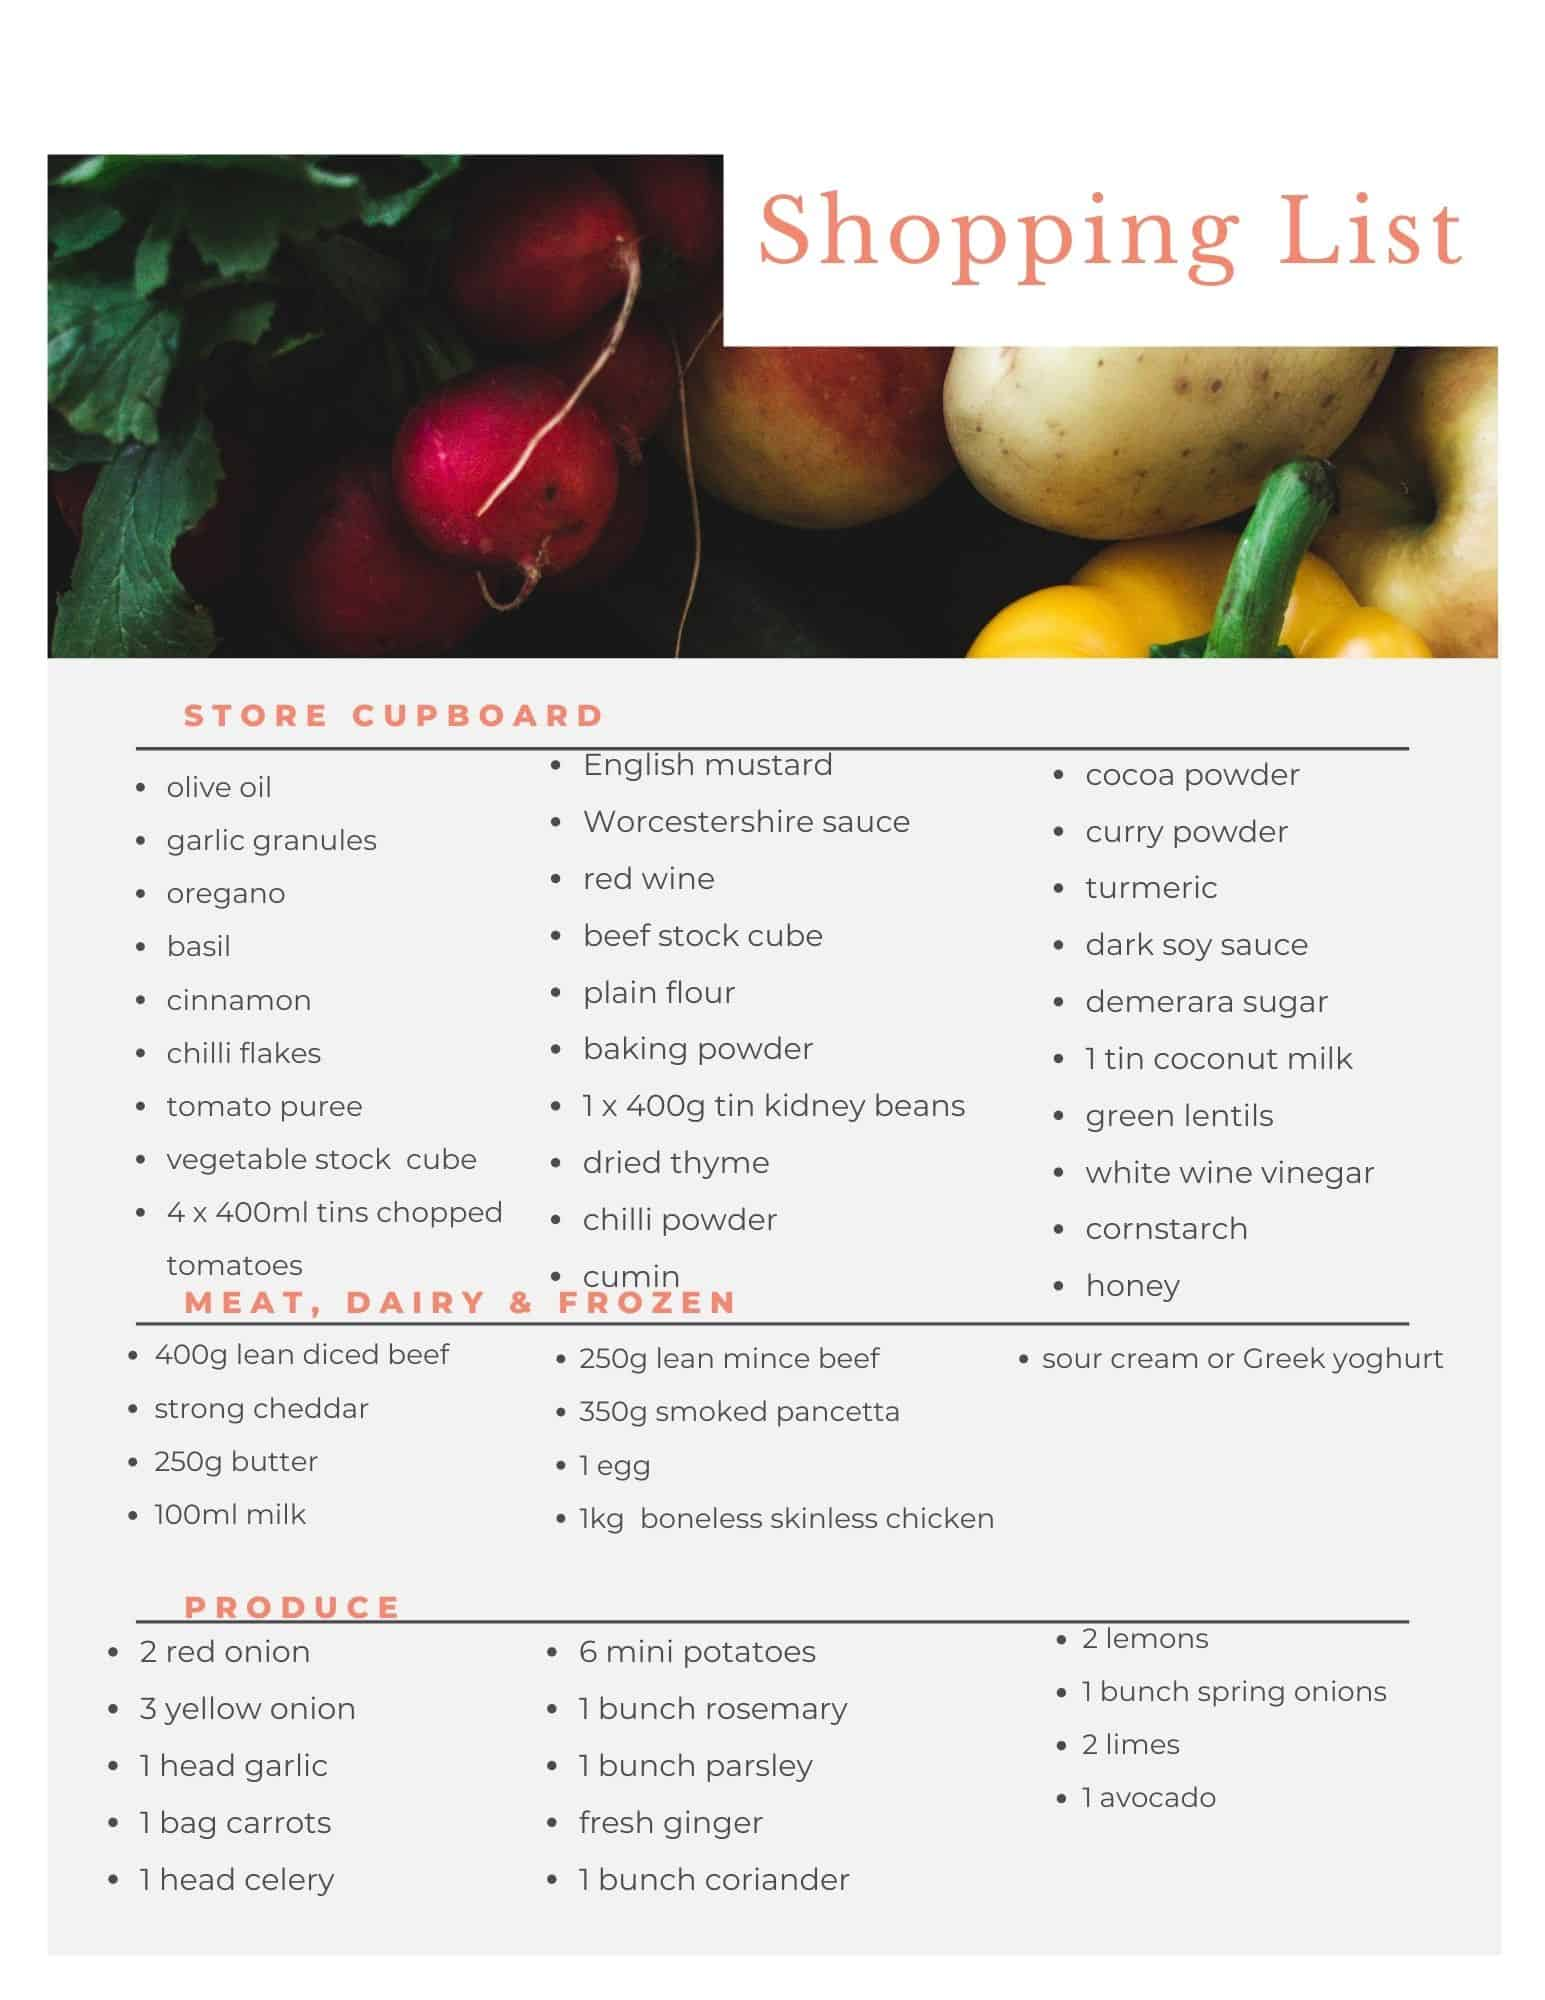 Shopping list for Aldi meal plan